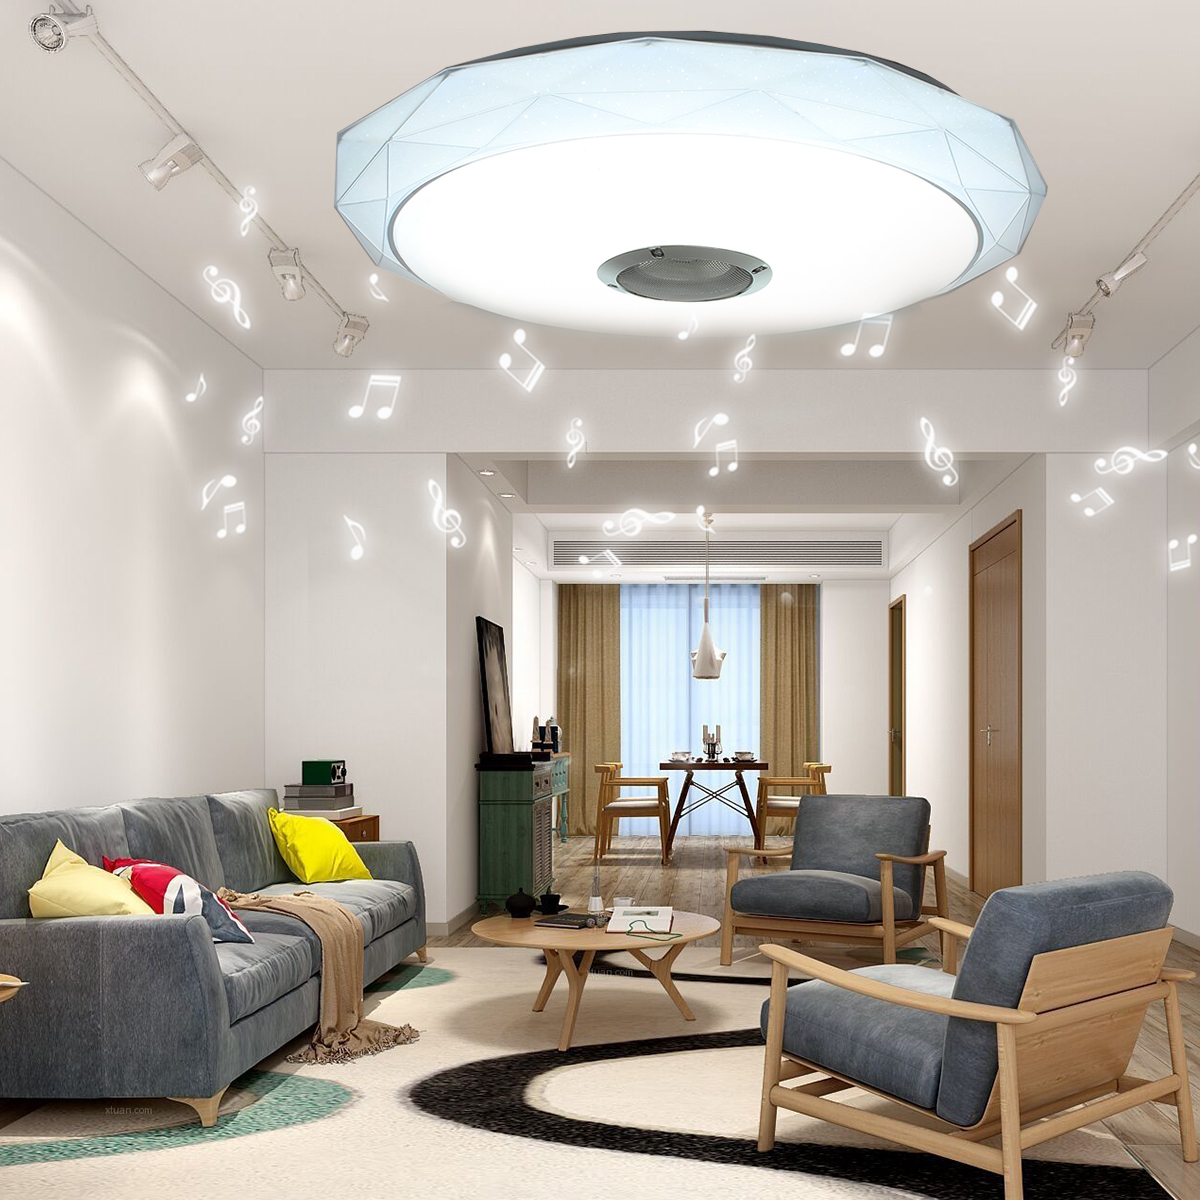 Acrylic LED Ceiling Light RGB Dimmable 36W APP Remote Control Bluetooth Speaker Music Ceiling Lights Lamp Living Room Bedroom 2017 new rgb dimmable 36w led ceiling light with bluetooth